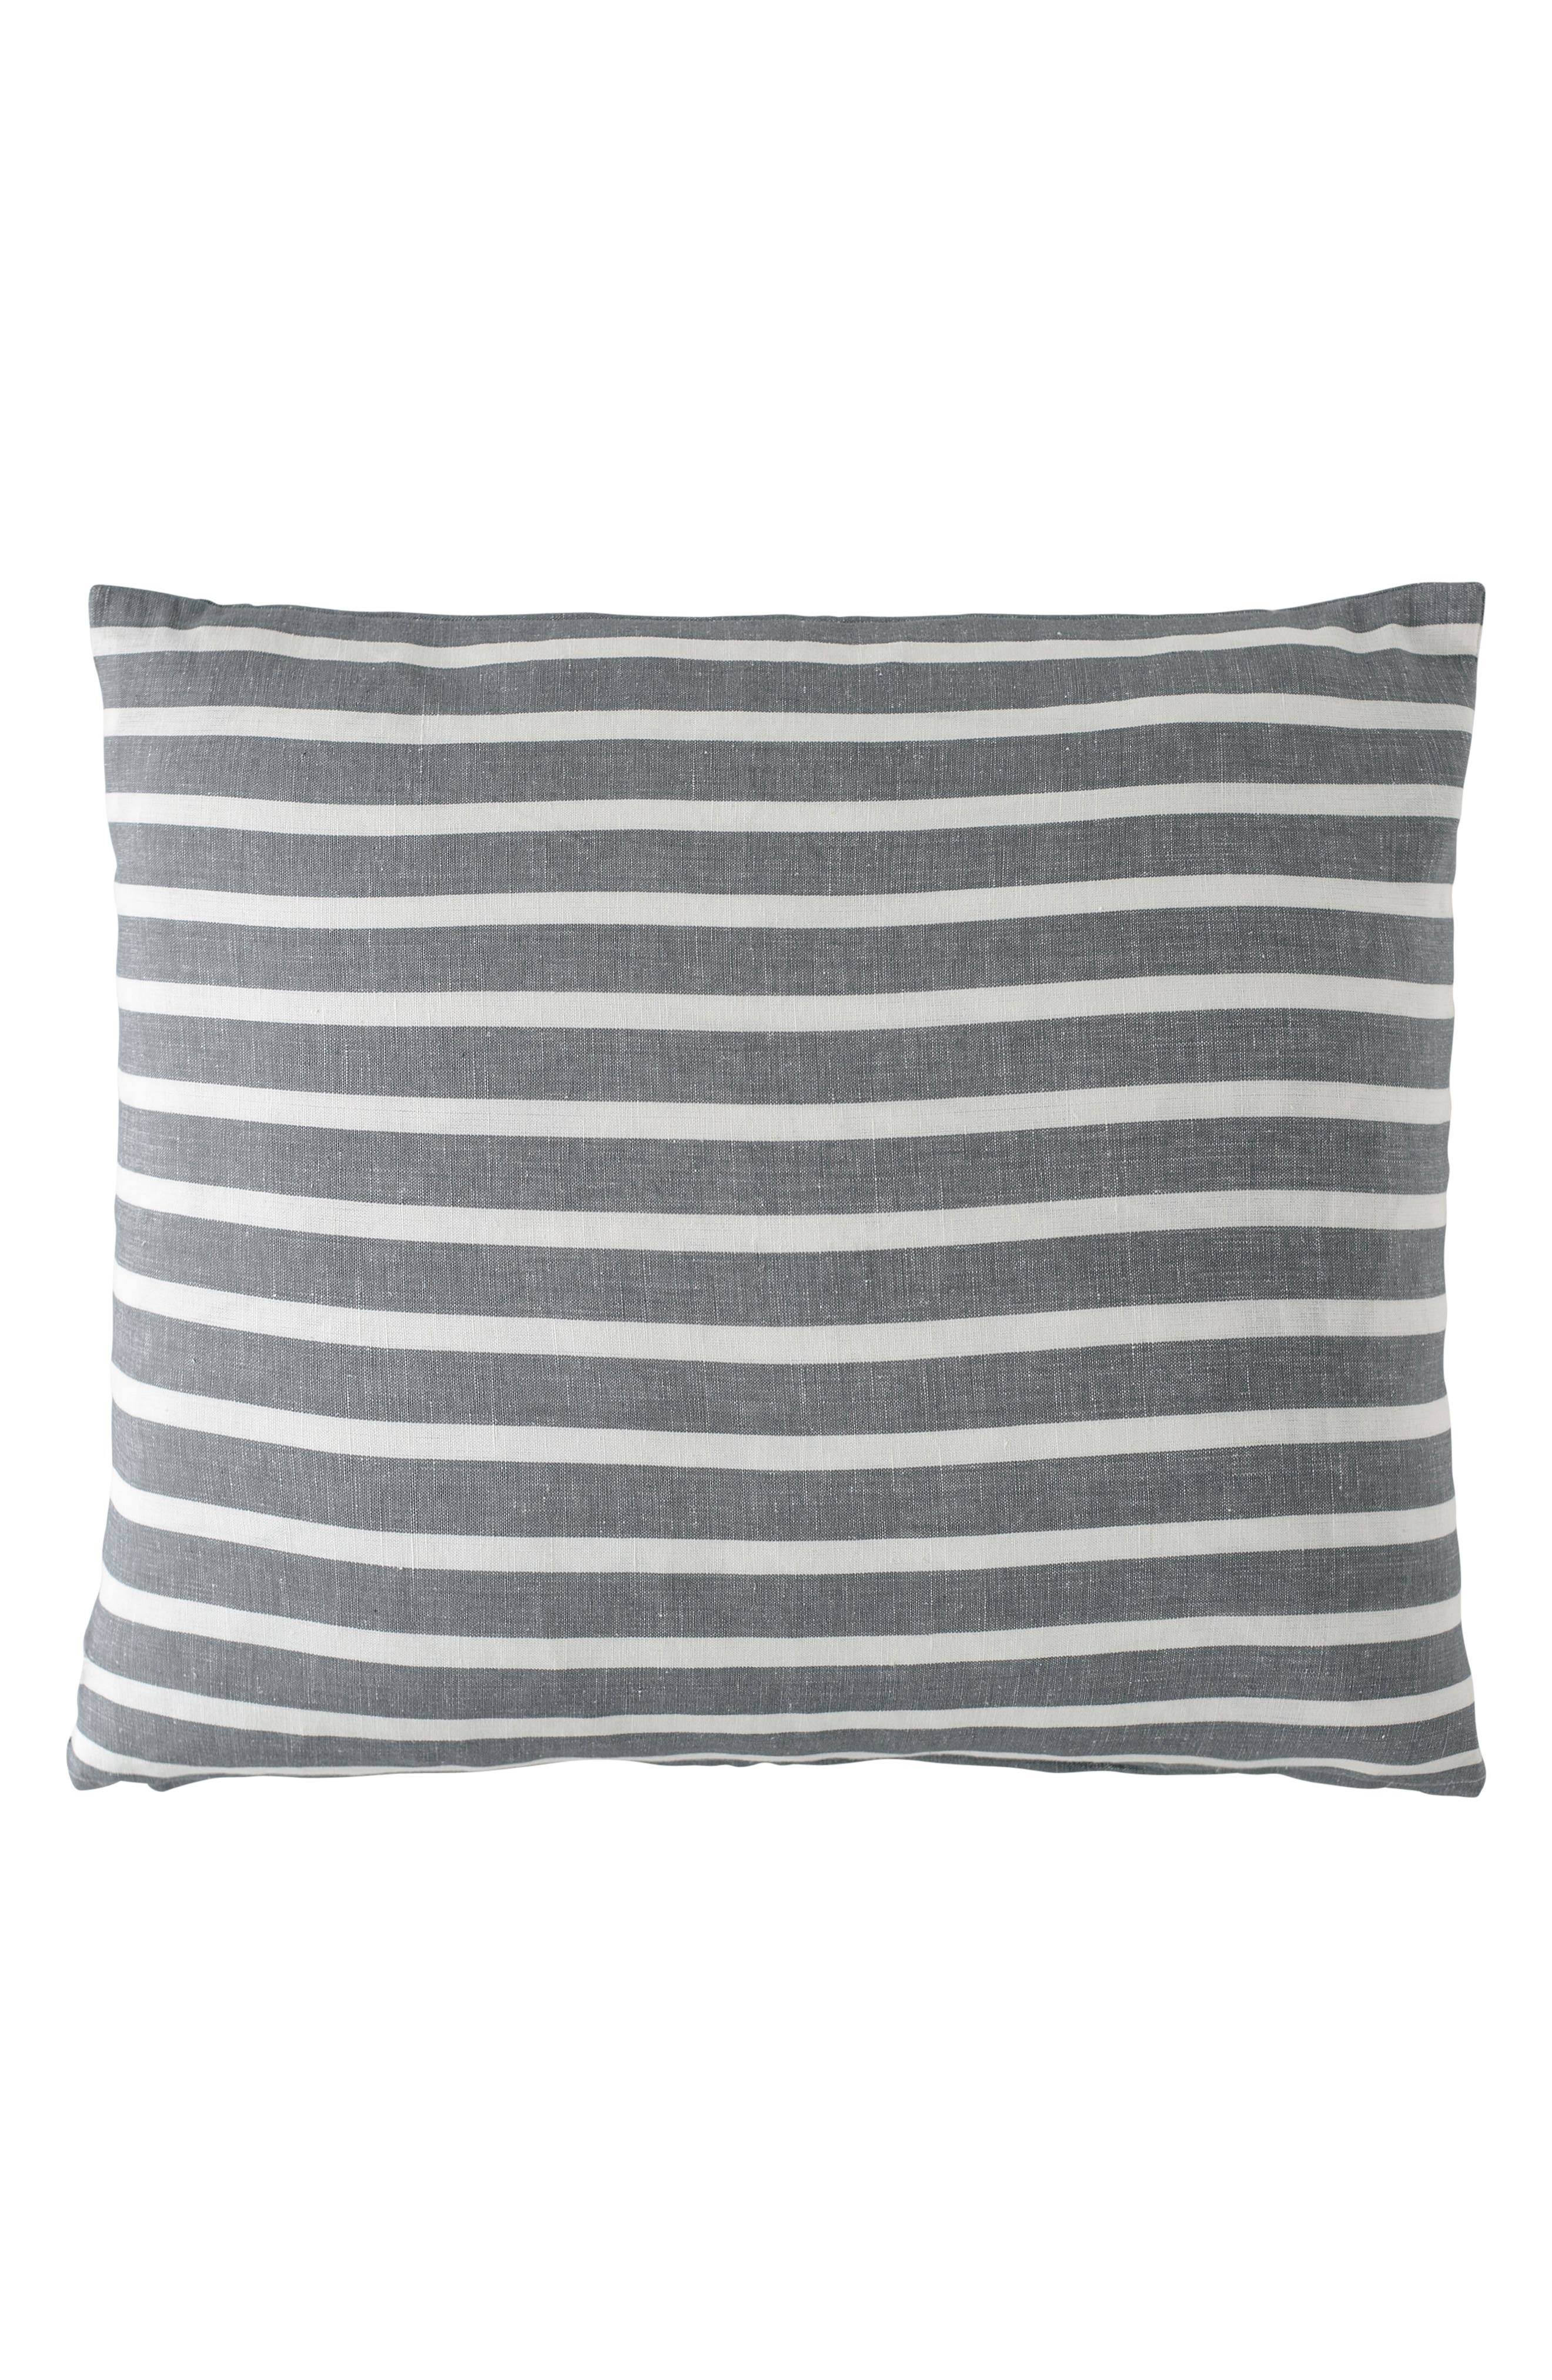 EADIE LIFESTYLE, Coitier Scatter Linen & Cotton Accent Pillow, Main thumbnail 1, color, SLATE/ WHITE